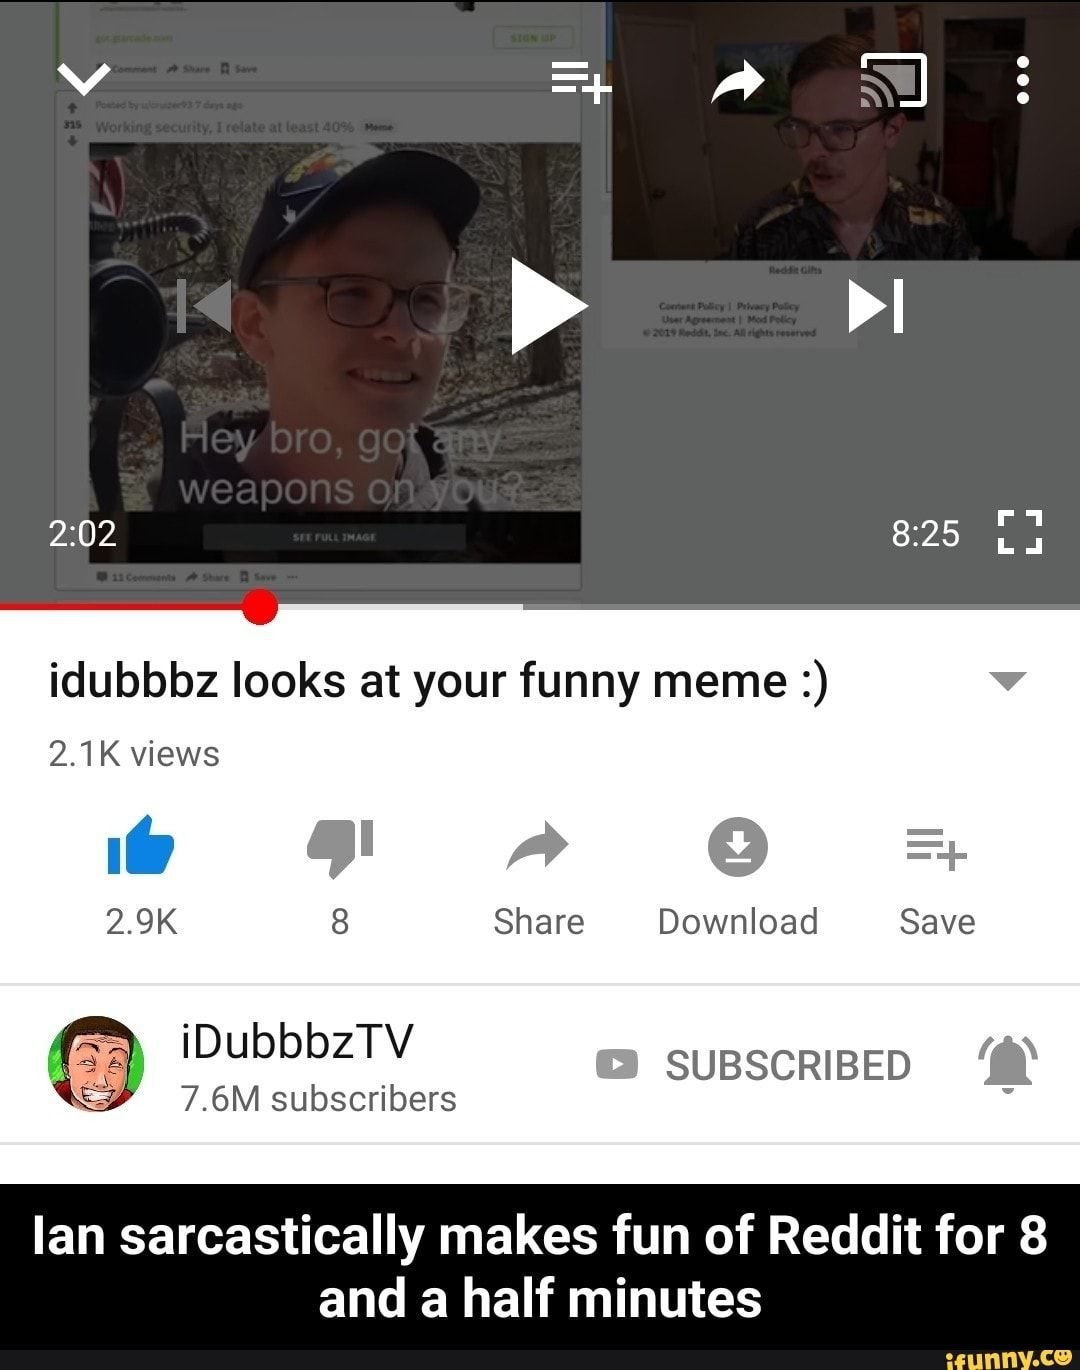 Makes Fun Of Reddit For 8 And Idubbbz Looks At Your Funny Meme A Half Minutes Ian Sarcastically Ian Sarcastically Makes Fun Of Reddit For 8 And A Half Minu